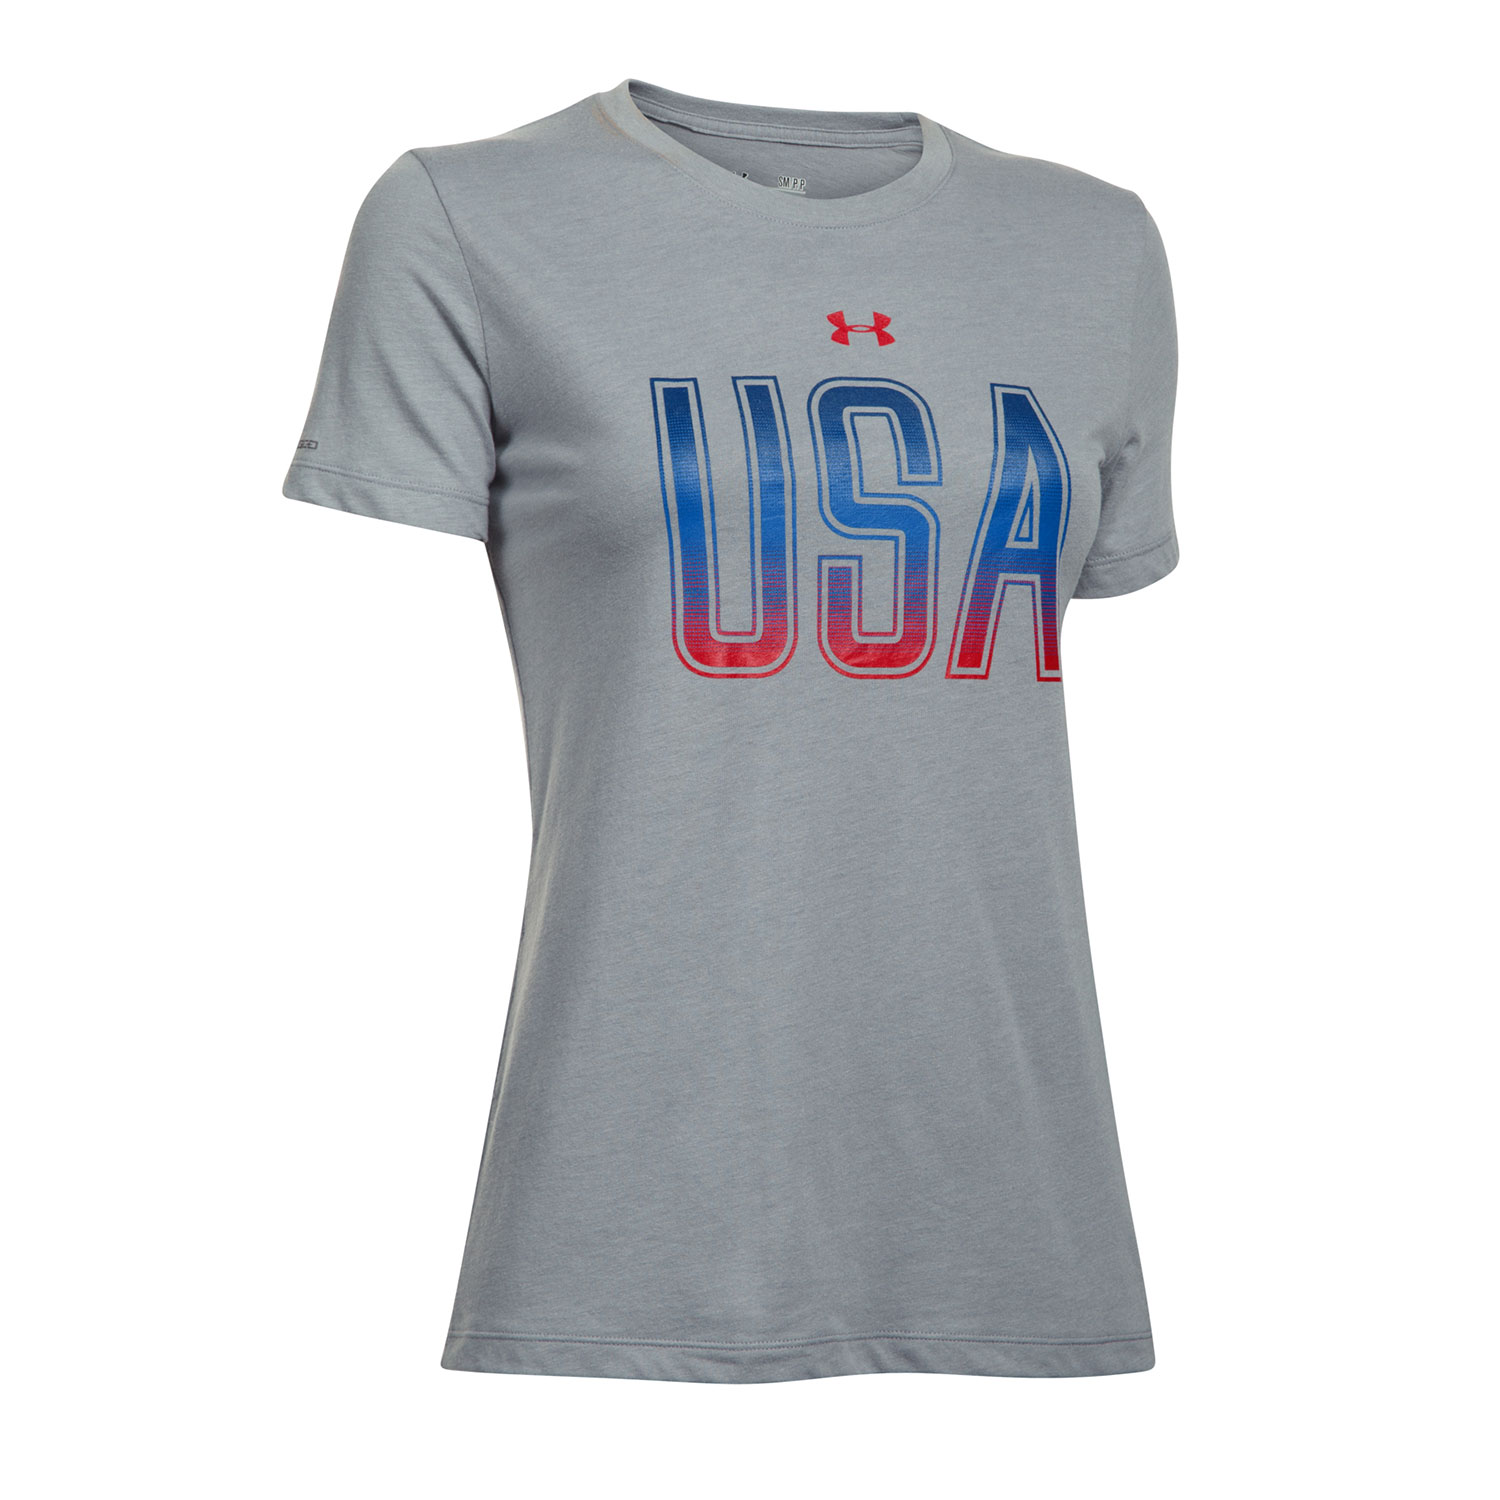 Under Armour Women's USA Freedom T-Shirt